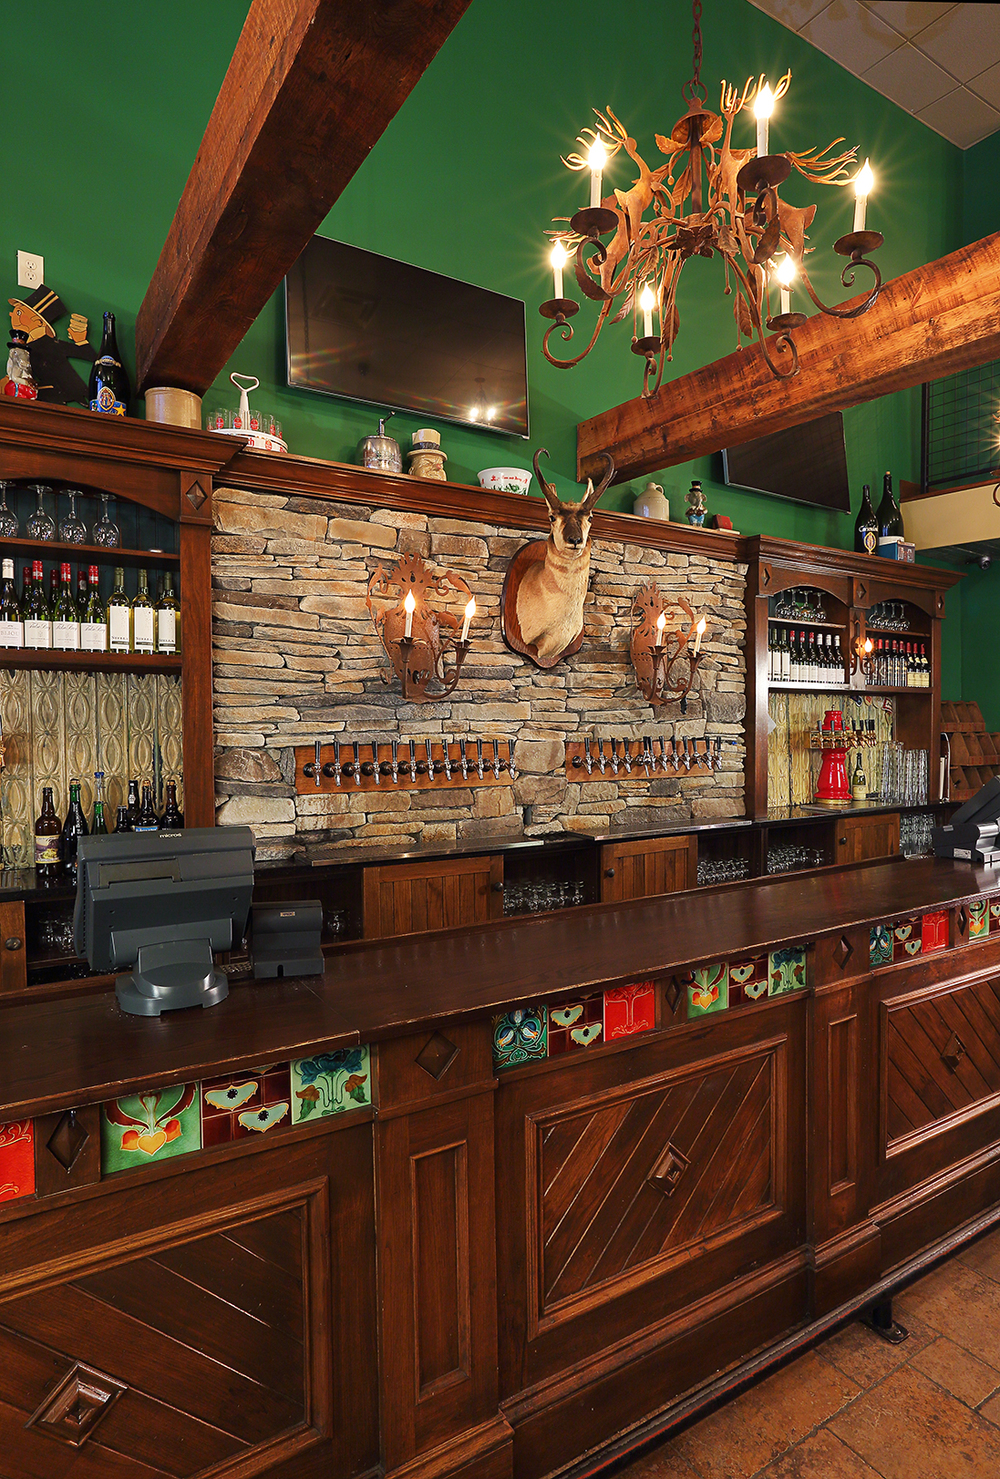 Madison Pour House 2015 07_Final_Low Res.jpg